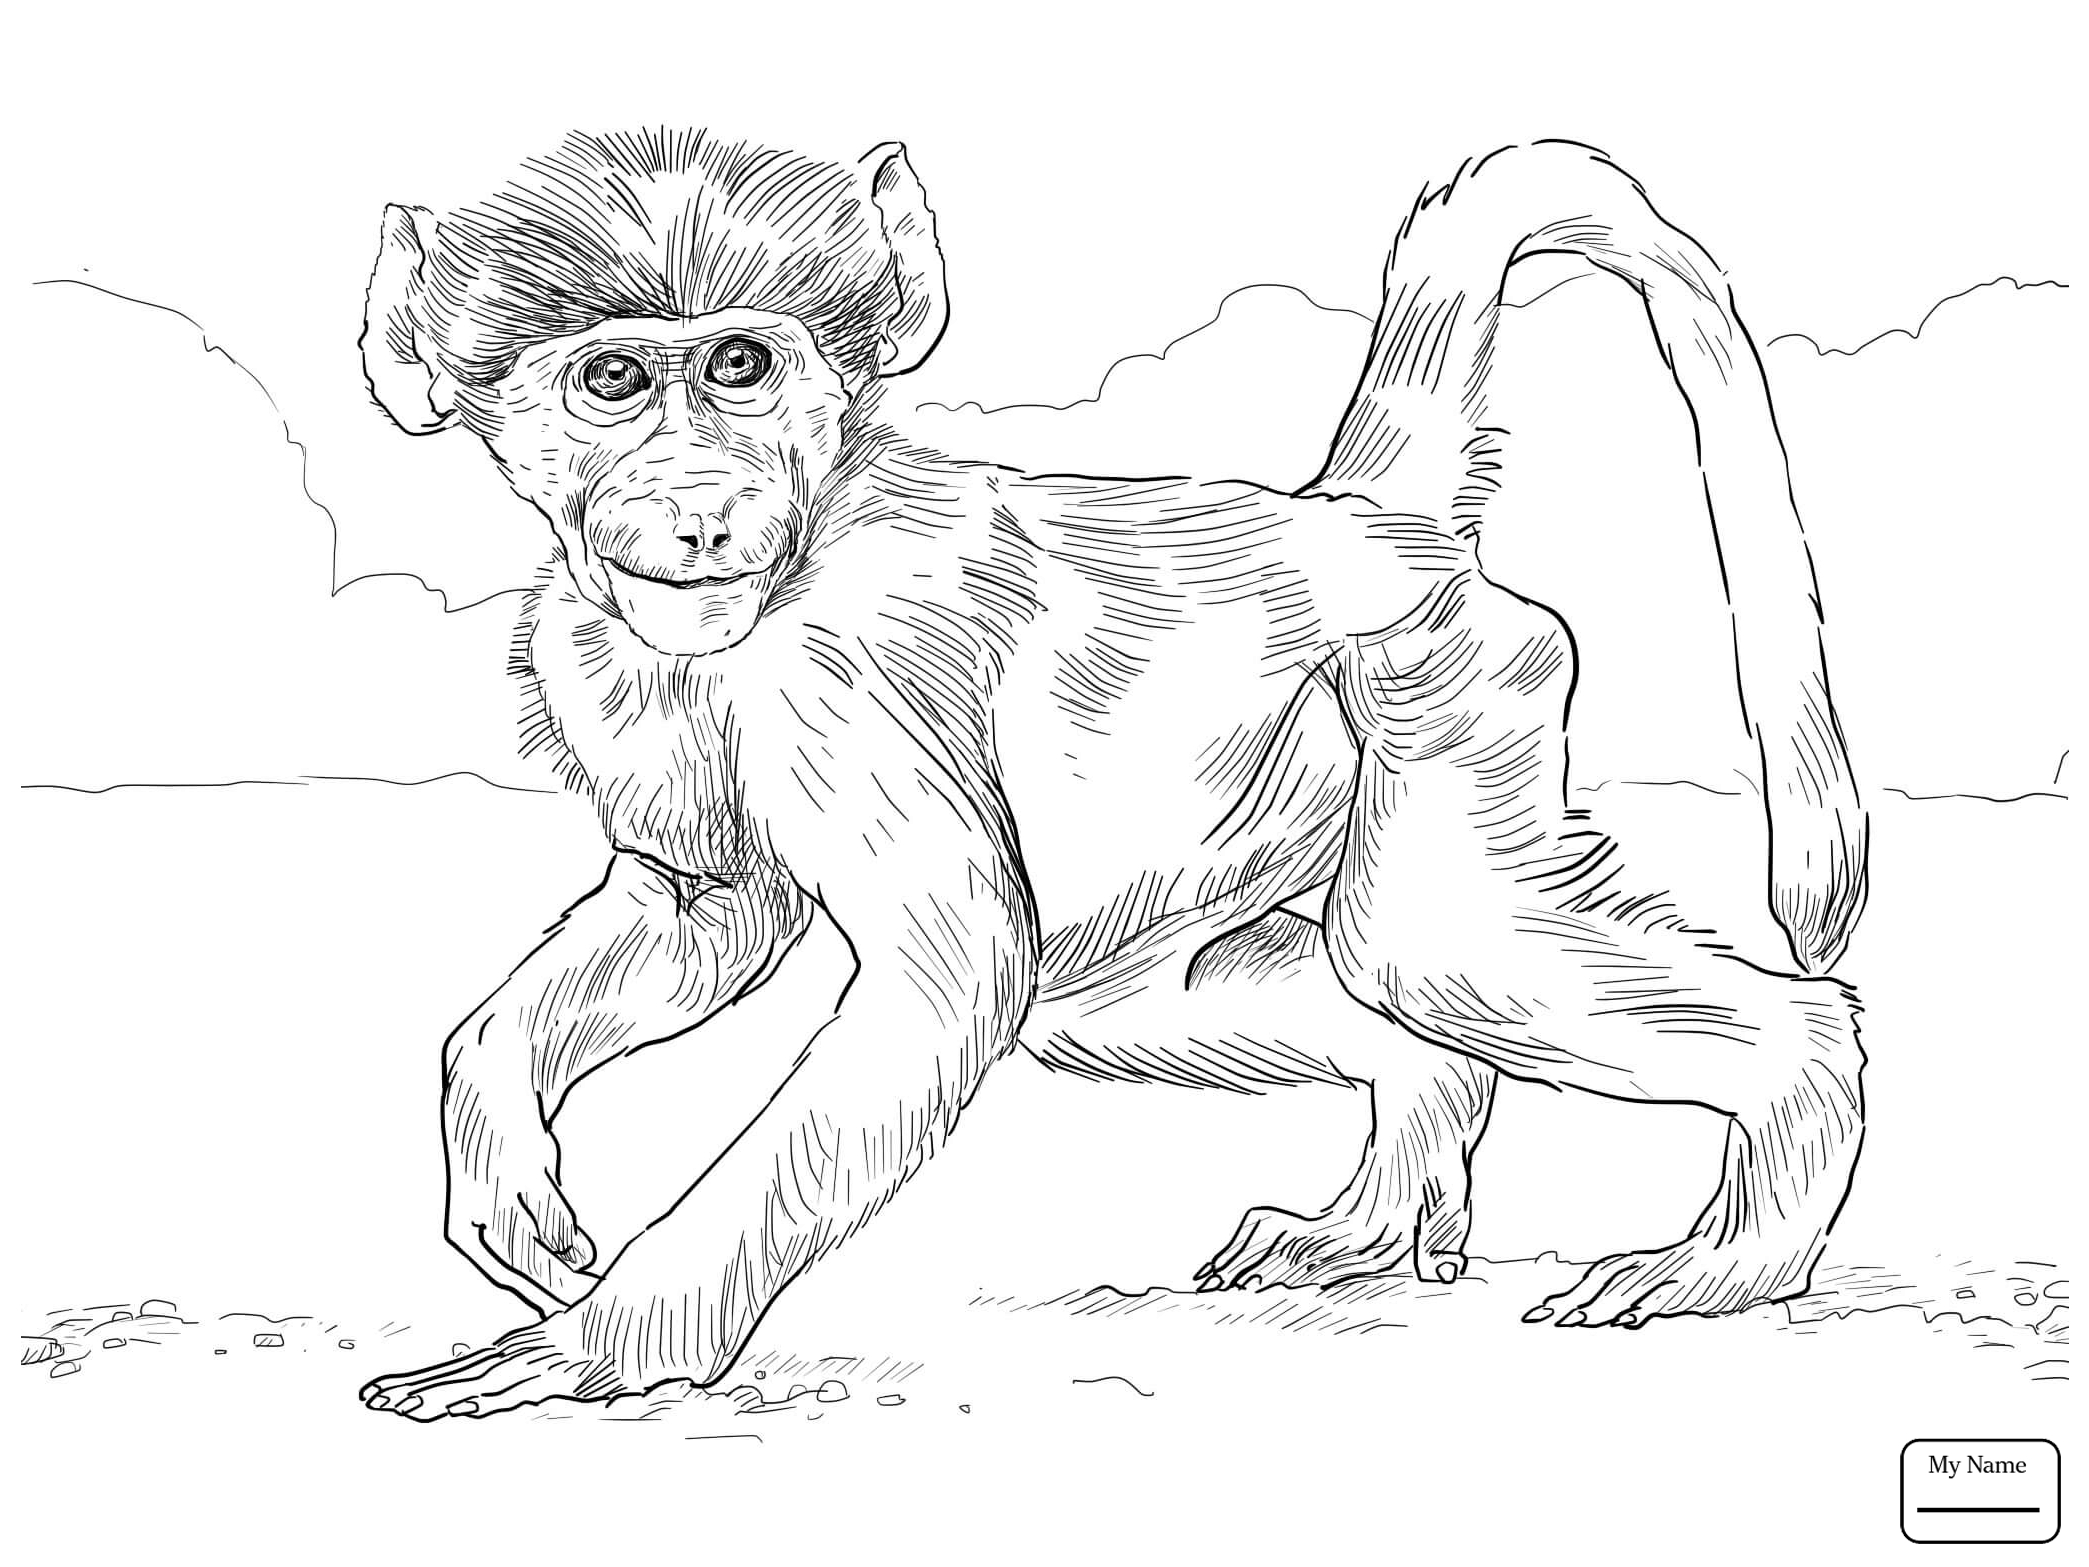 Spider Monkey Drawing at GetDrawings.com | Free for personal use ...